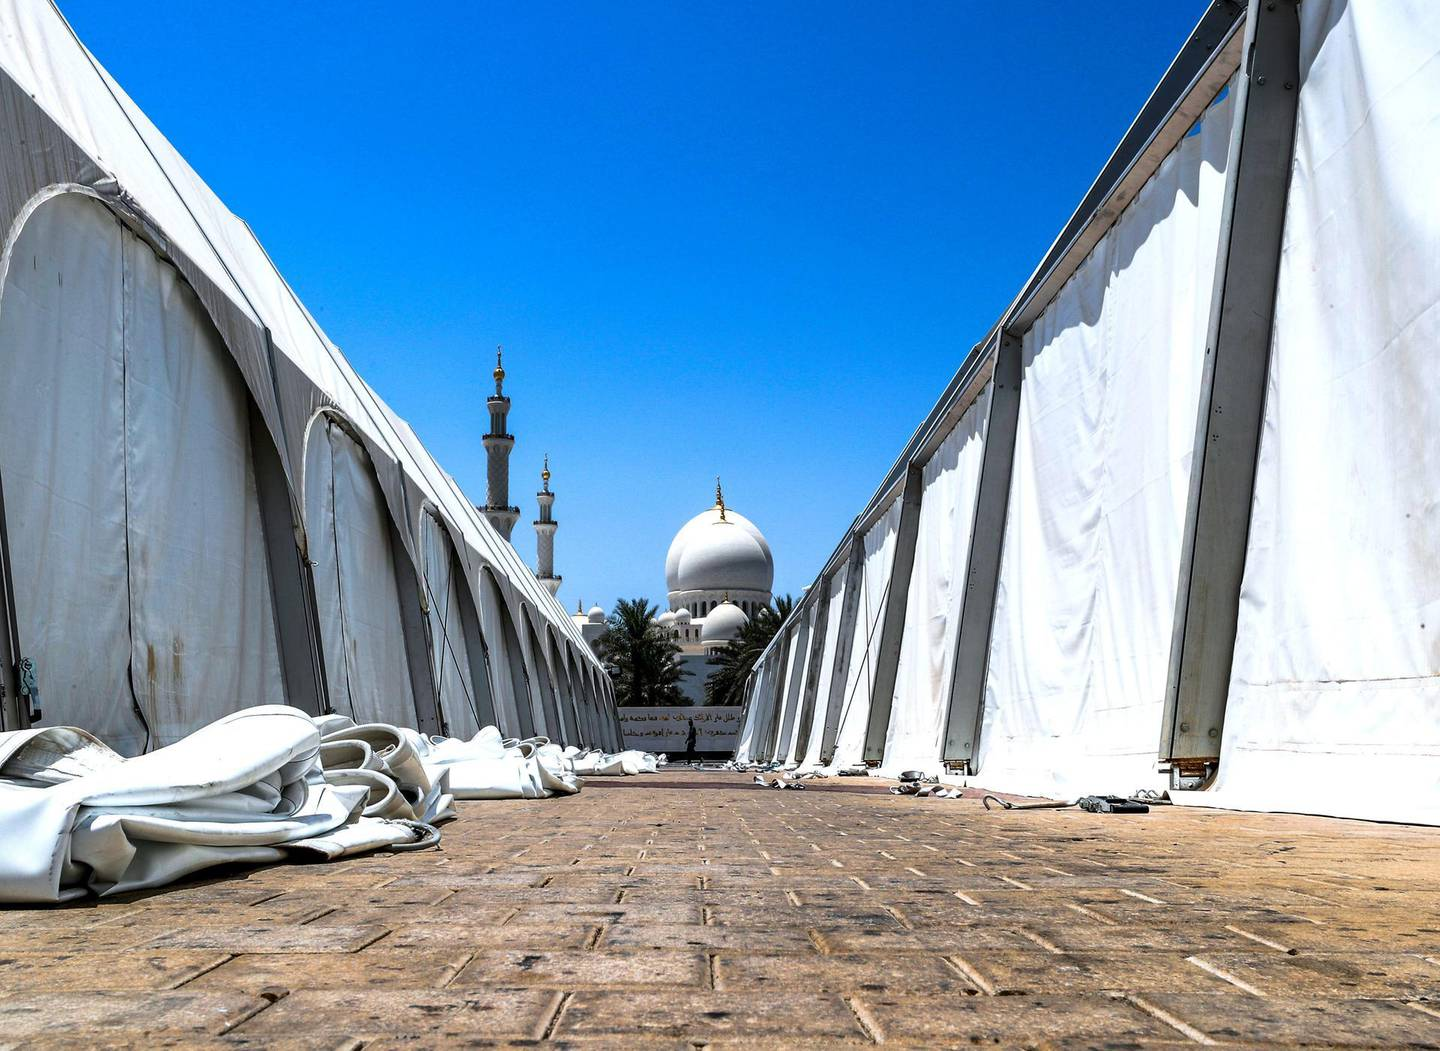 Abu Dhabi, U.A.E., June 18, 2018.  Sheikh Zayed Grand Mosque after Ramadan.  Workers disassemble the iftar tents at the North Parking Lot area of the Grand Mosque.Victor Besa / The NationalRequested by:   Olive Obina